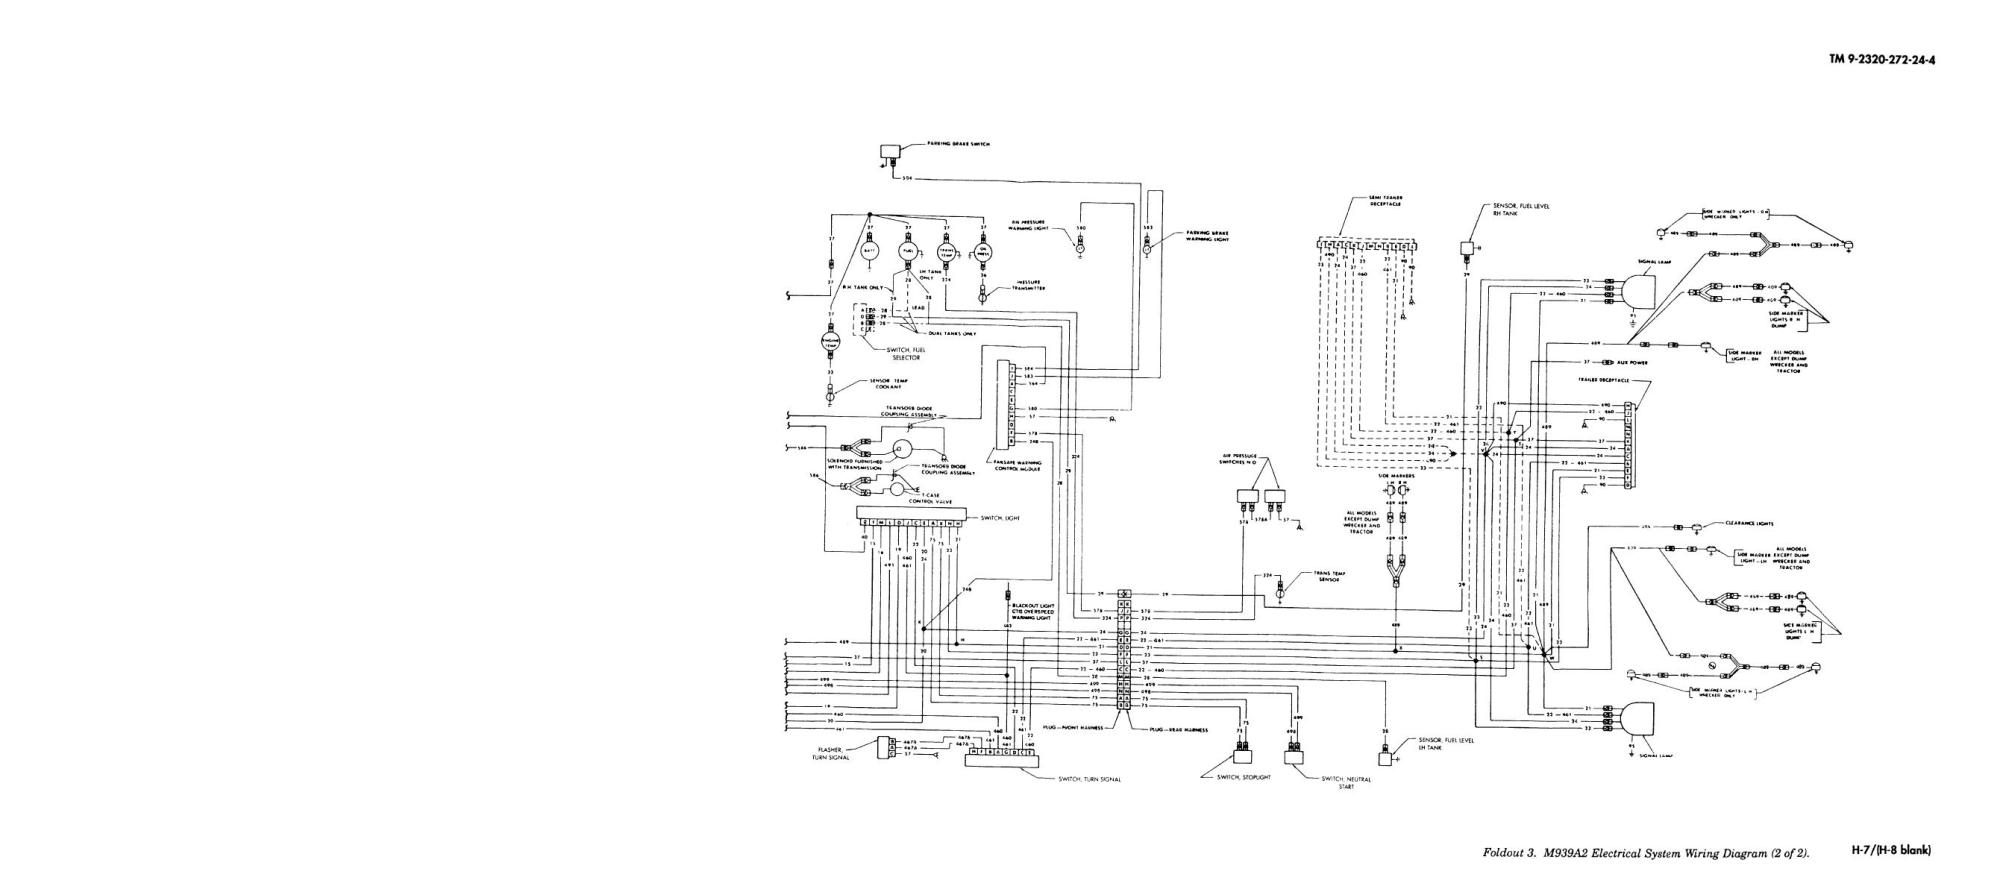 hight resolution of m939a2 electrical system wiring diagram 2 of 2 tm 9 2320